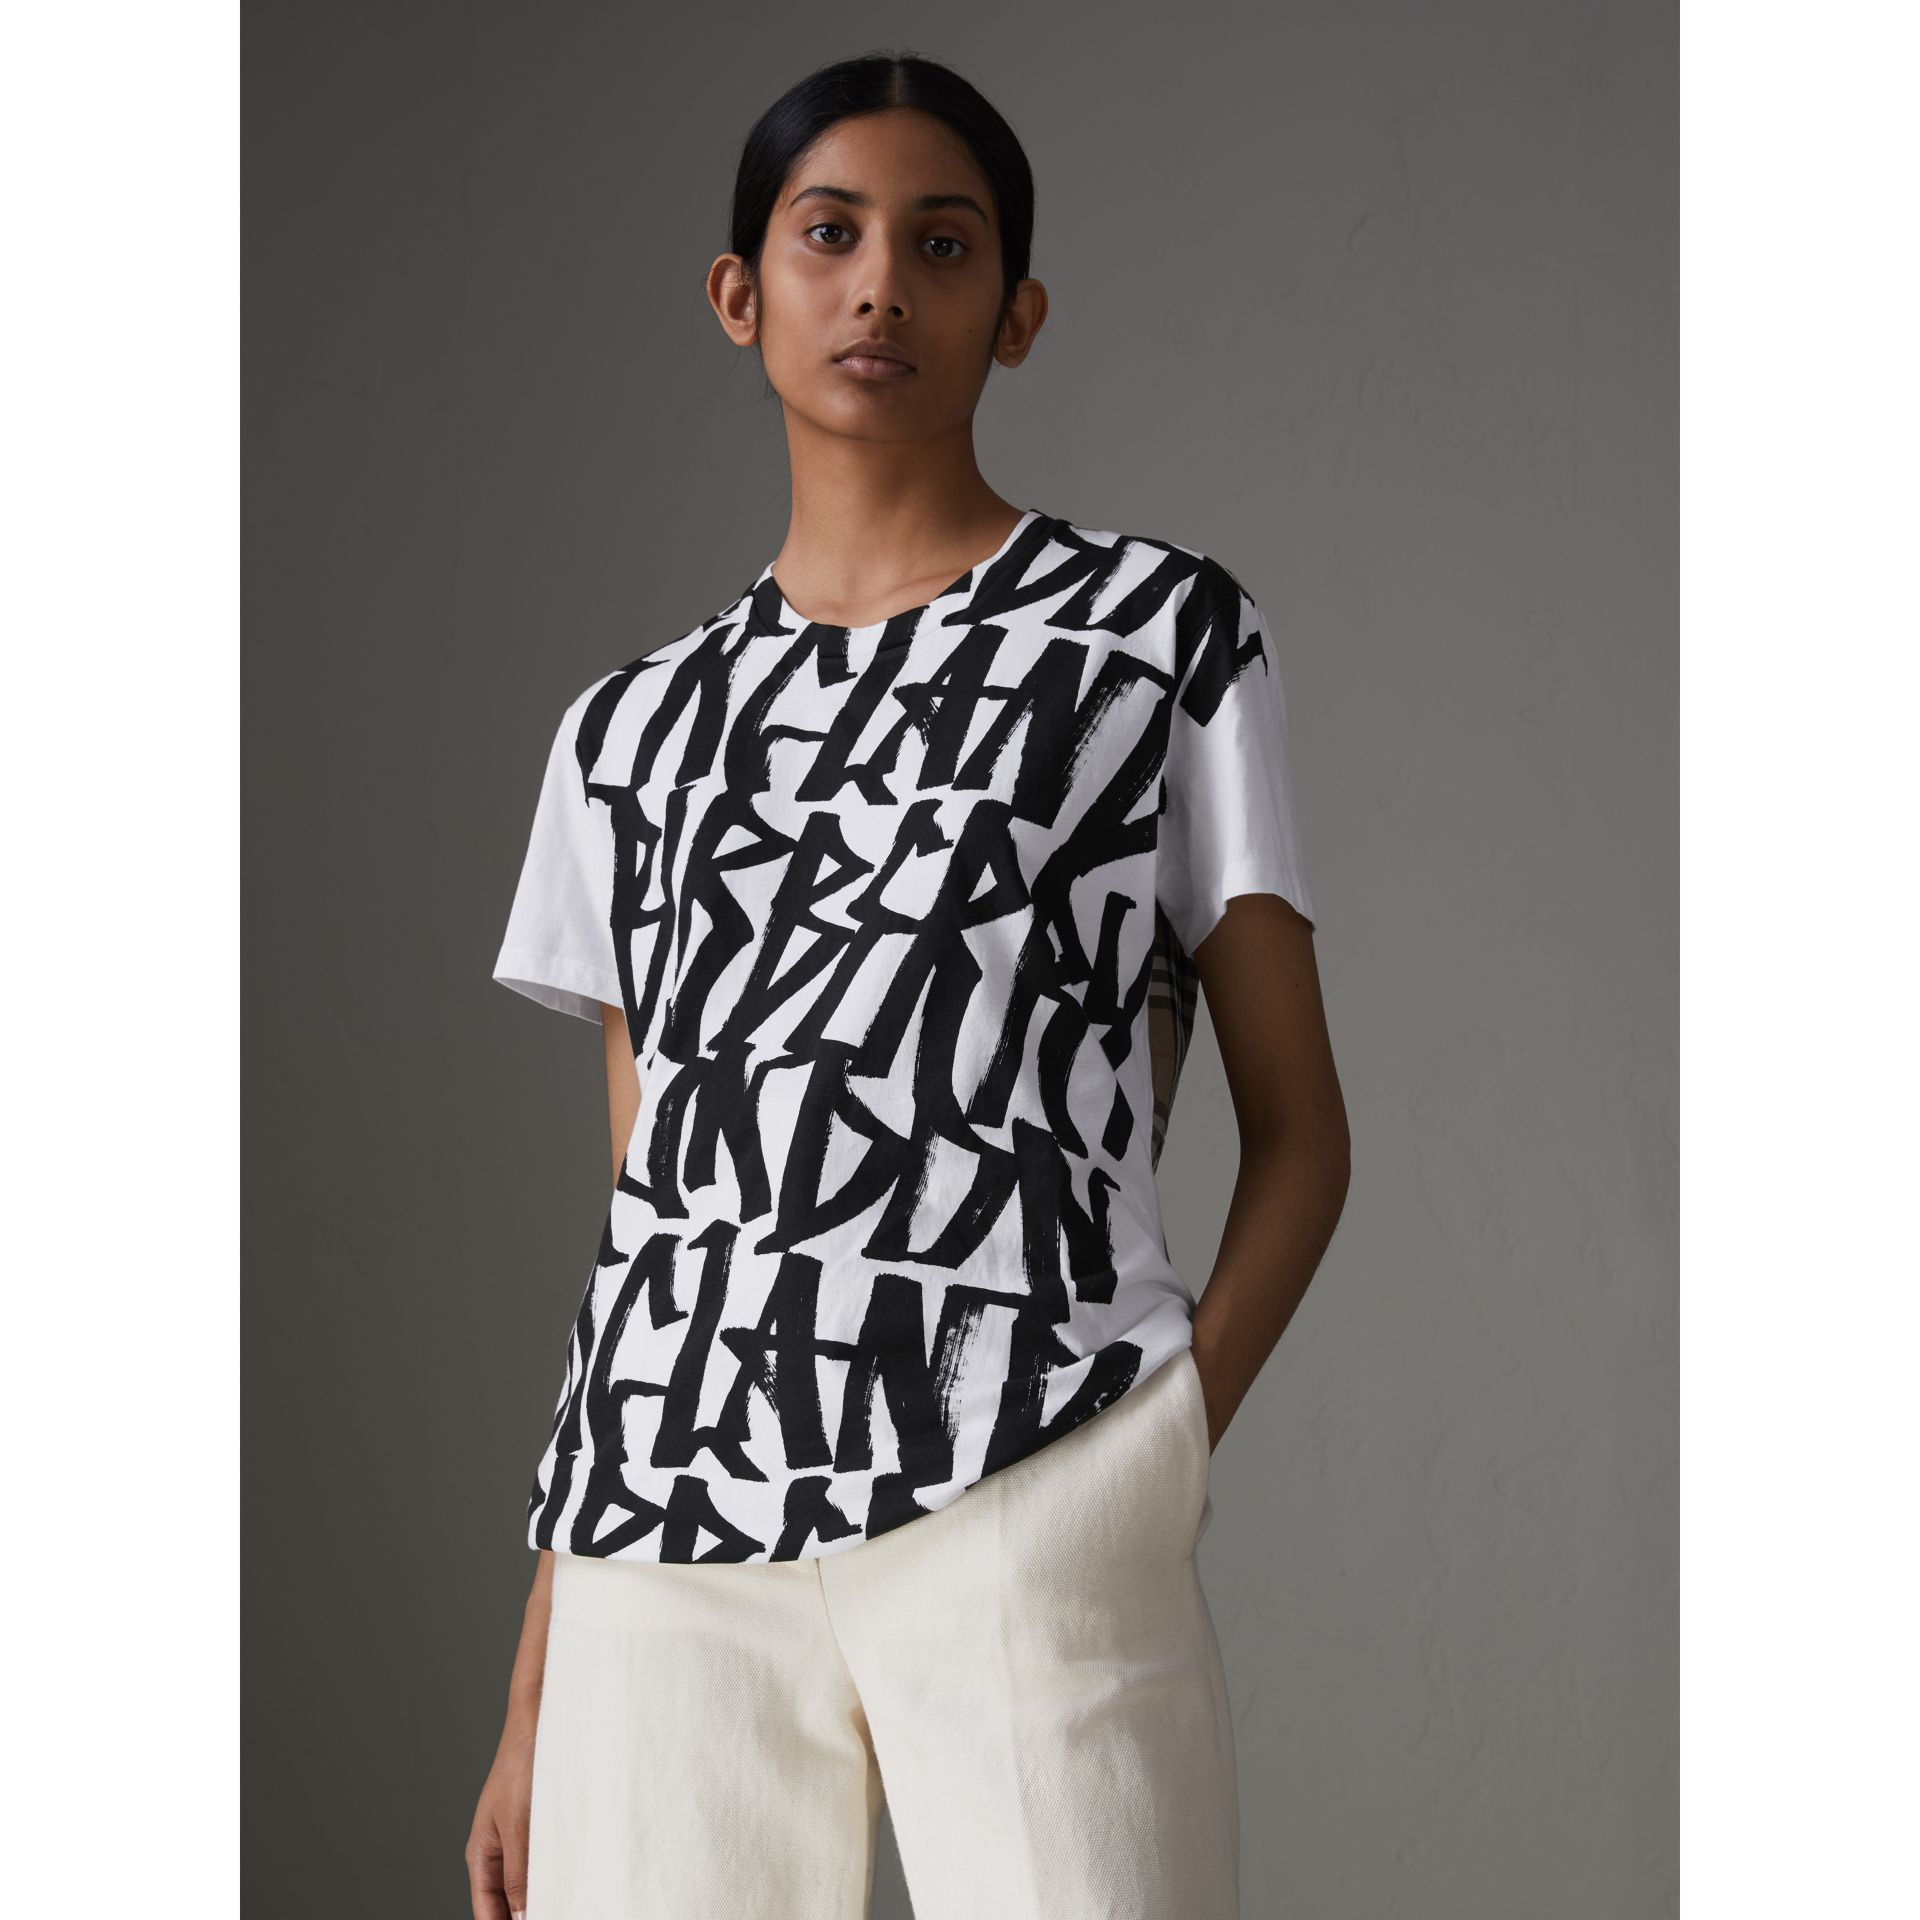 Graffiti Print and Vintage Check T-shirt in White - Women | Burberry United Kingdom - gallery image 1